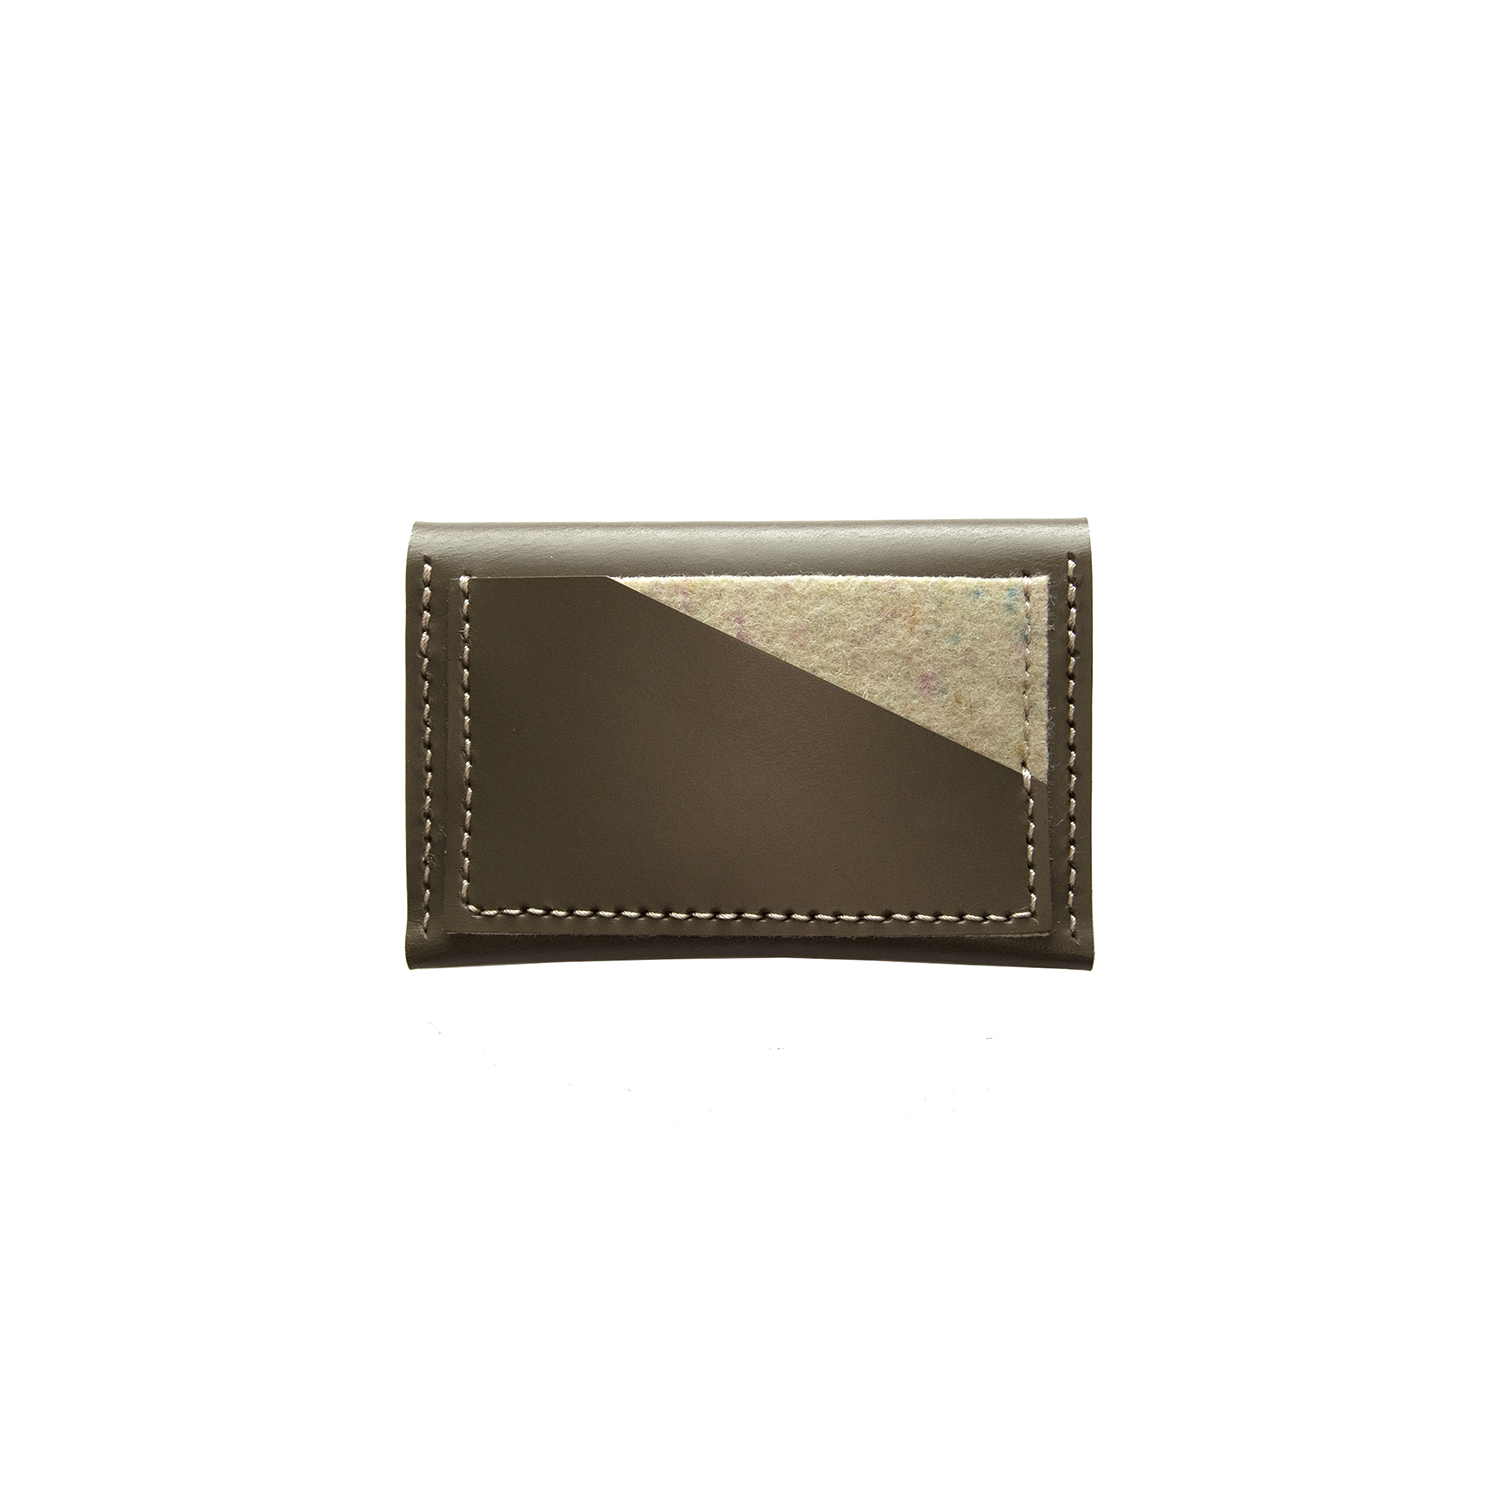 Geometric Leather Card Holder in Taupe